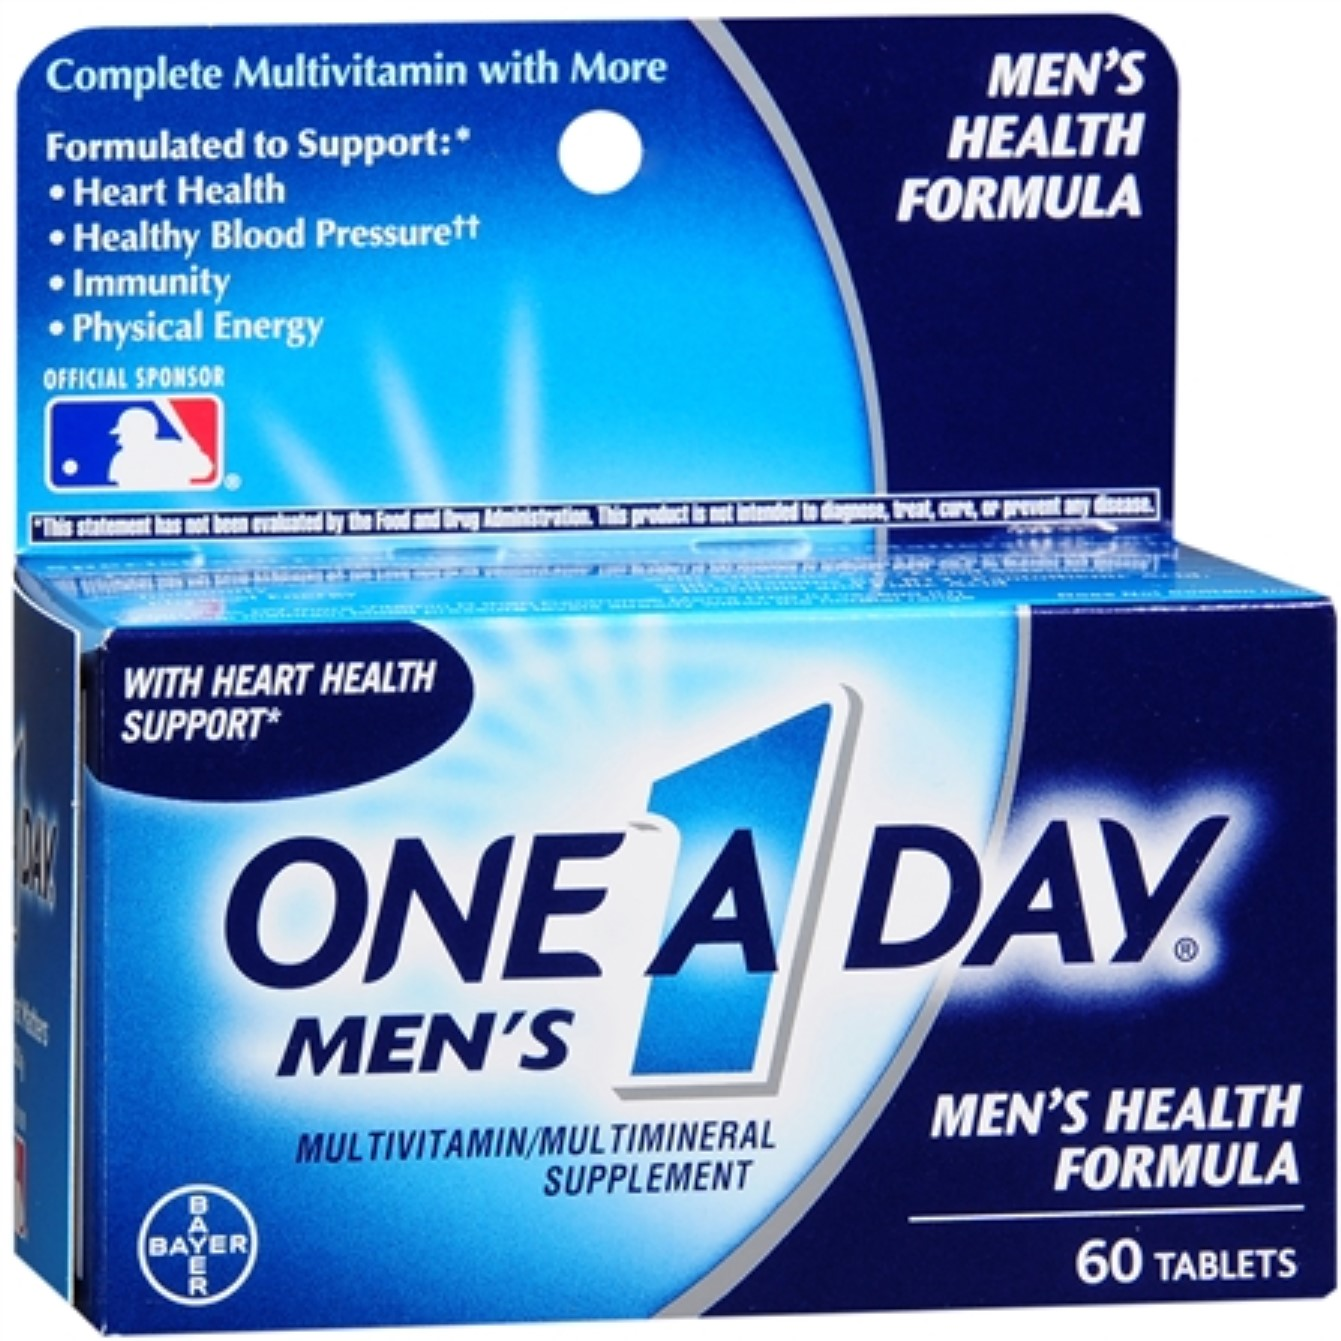 One-A-Day Men's Health Formula Tablets 60 ea (Pack of 6)